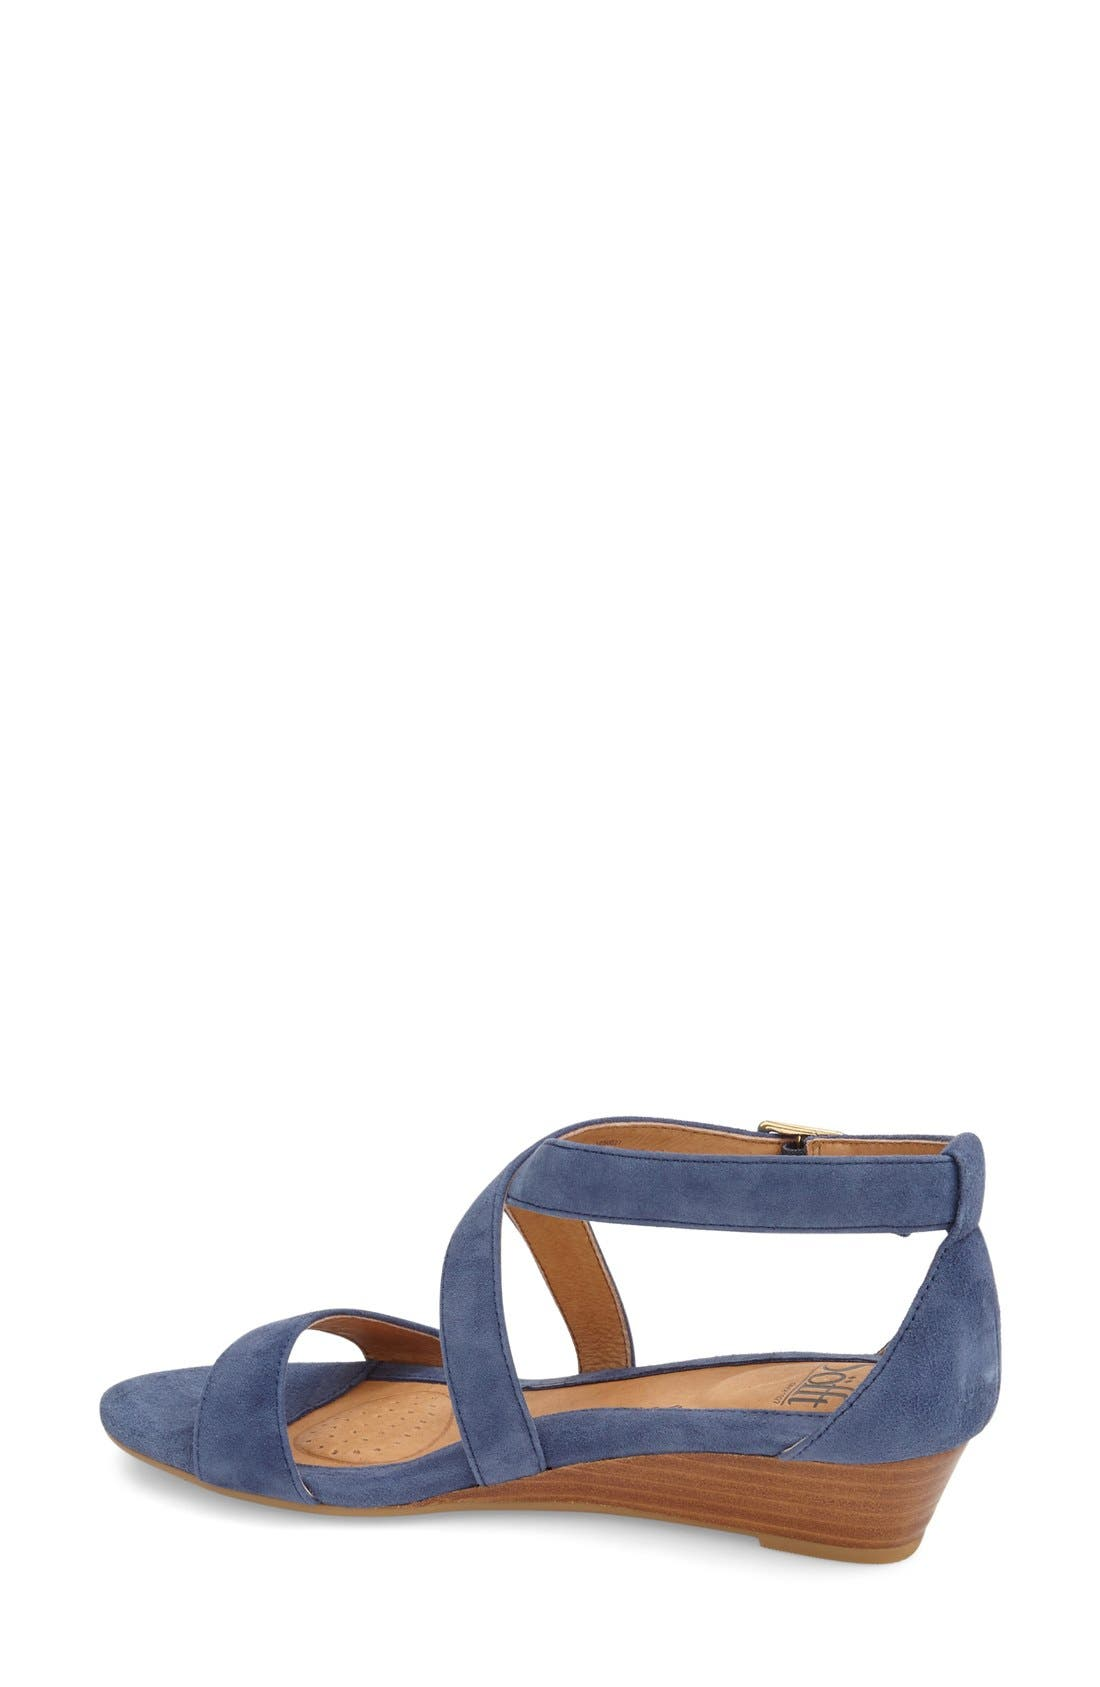 'Innis' Low Wedge Sandal,                             Alternate thumbnail 22, color,